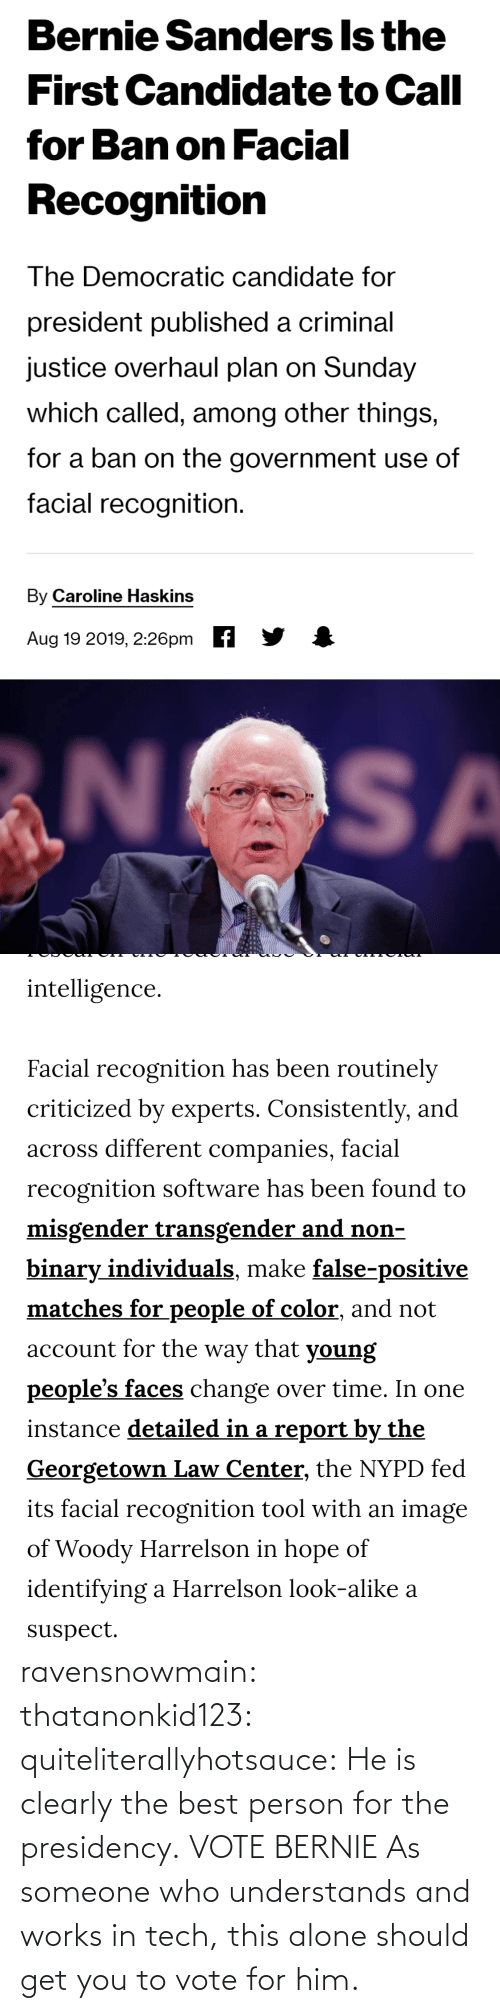 Bernie: ravensnowmain: thatanonkid123:  quiteliterallyhotsauce:   He is clearly the best person for the presidency.     VOTE BERNIE  As someone who understands and works in tech, this alone should get you to vote for him.